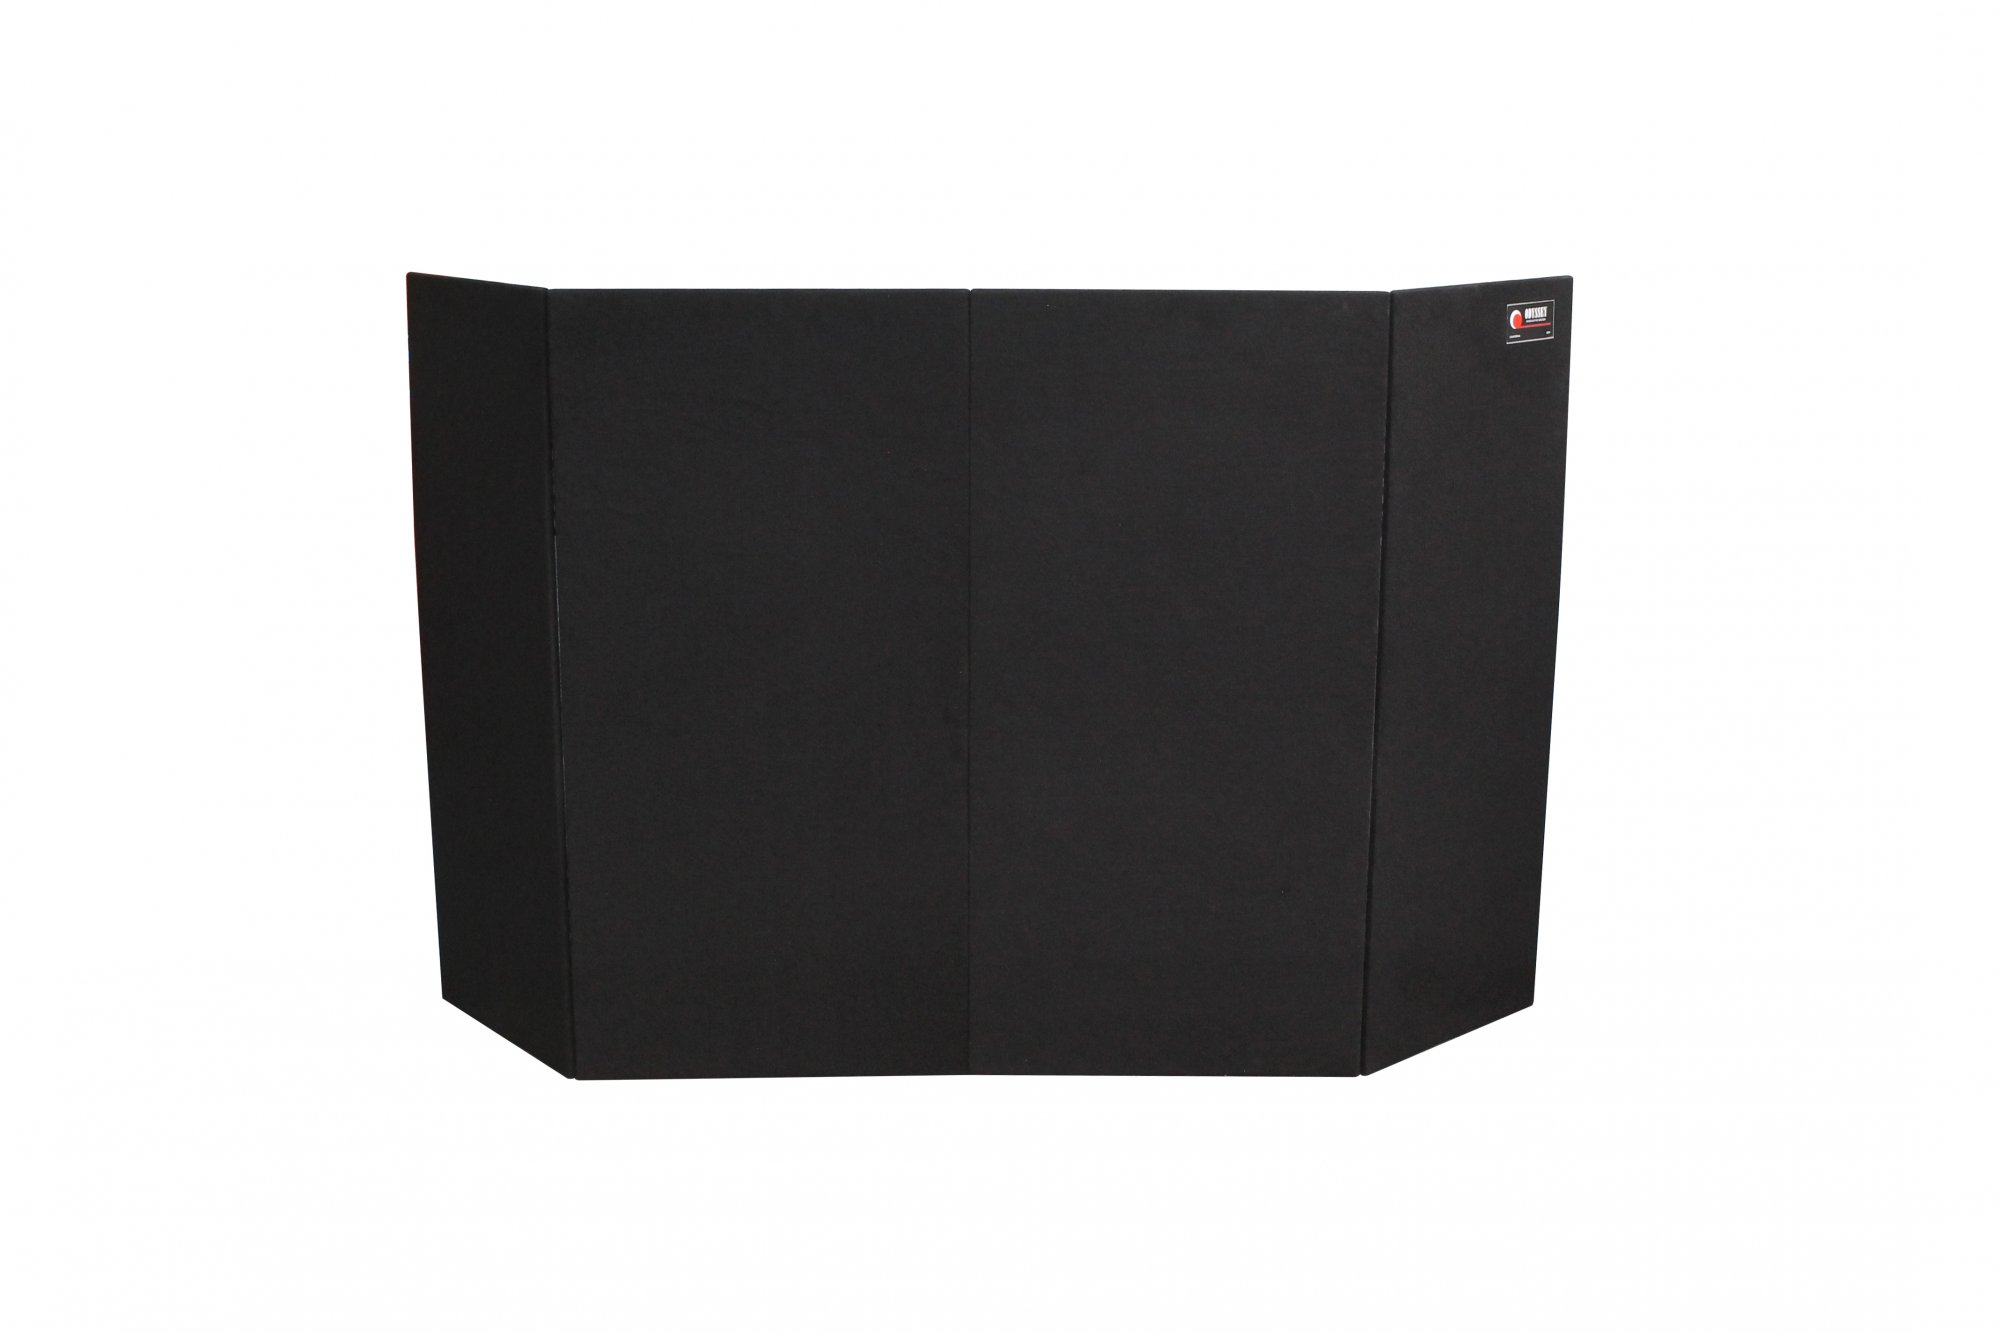 Odyssey Case CF4848 - Facade, Carpeted, Fold Out - 48 x 48